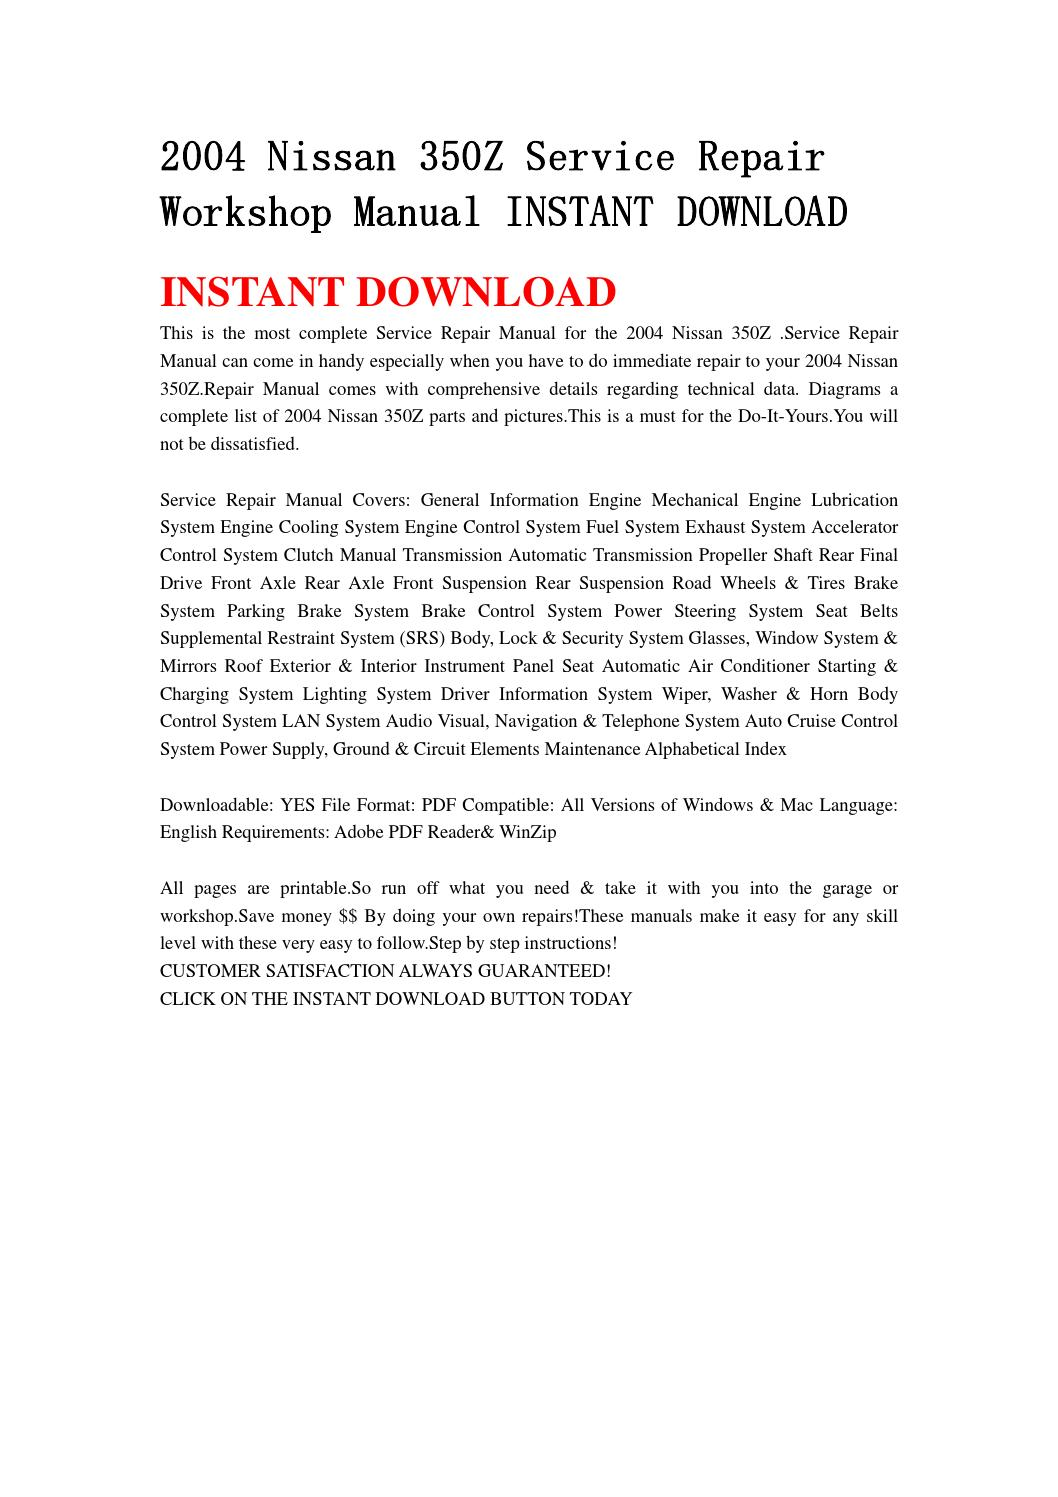 2004 nissan 350z service repair workshop manual instant download by  jjfhsbebf - issuu